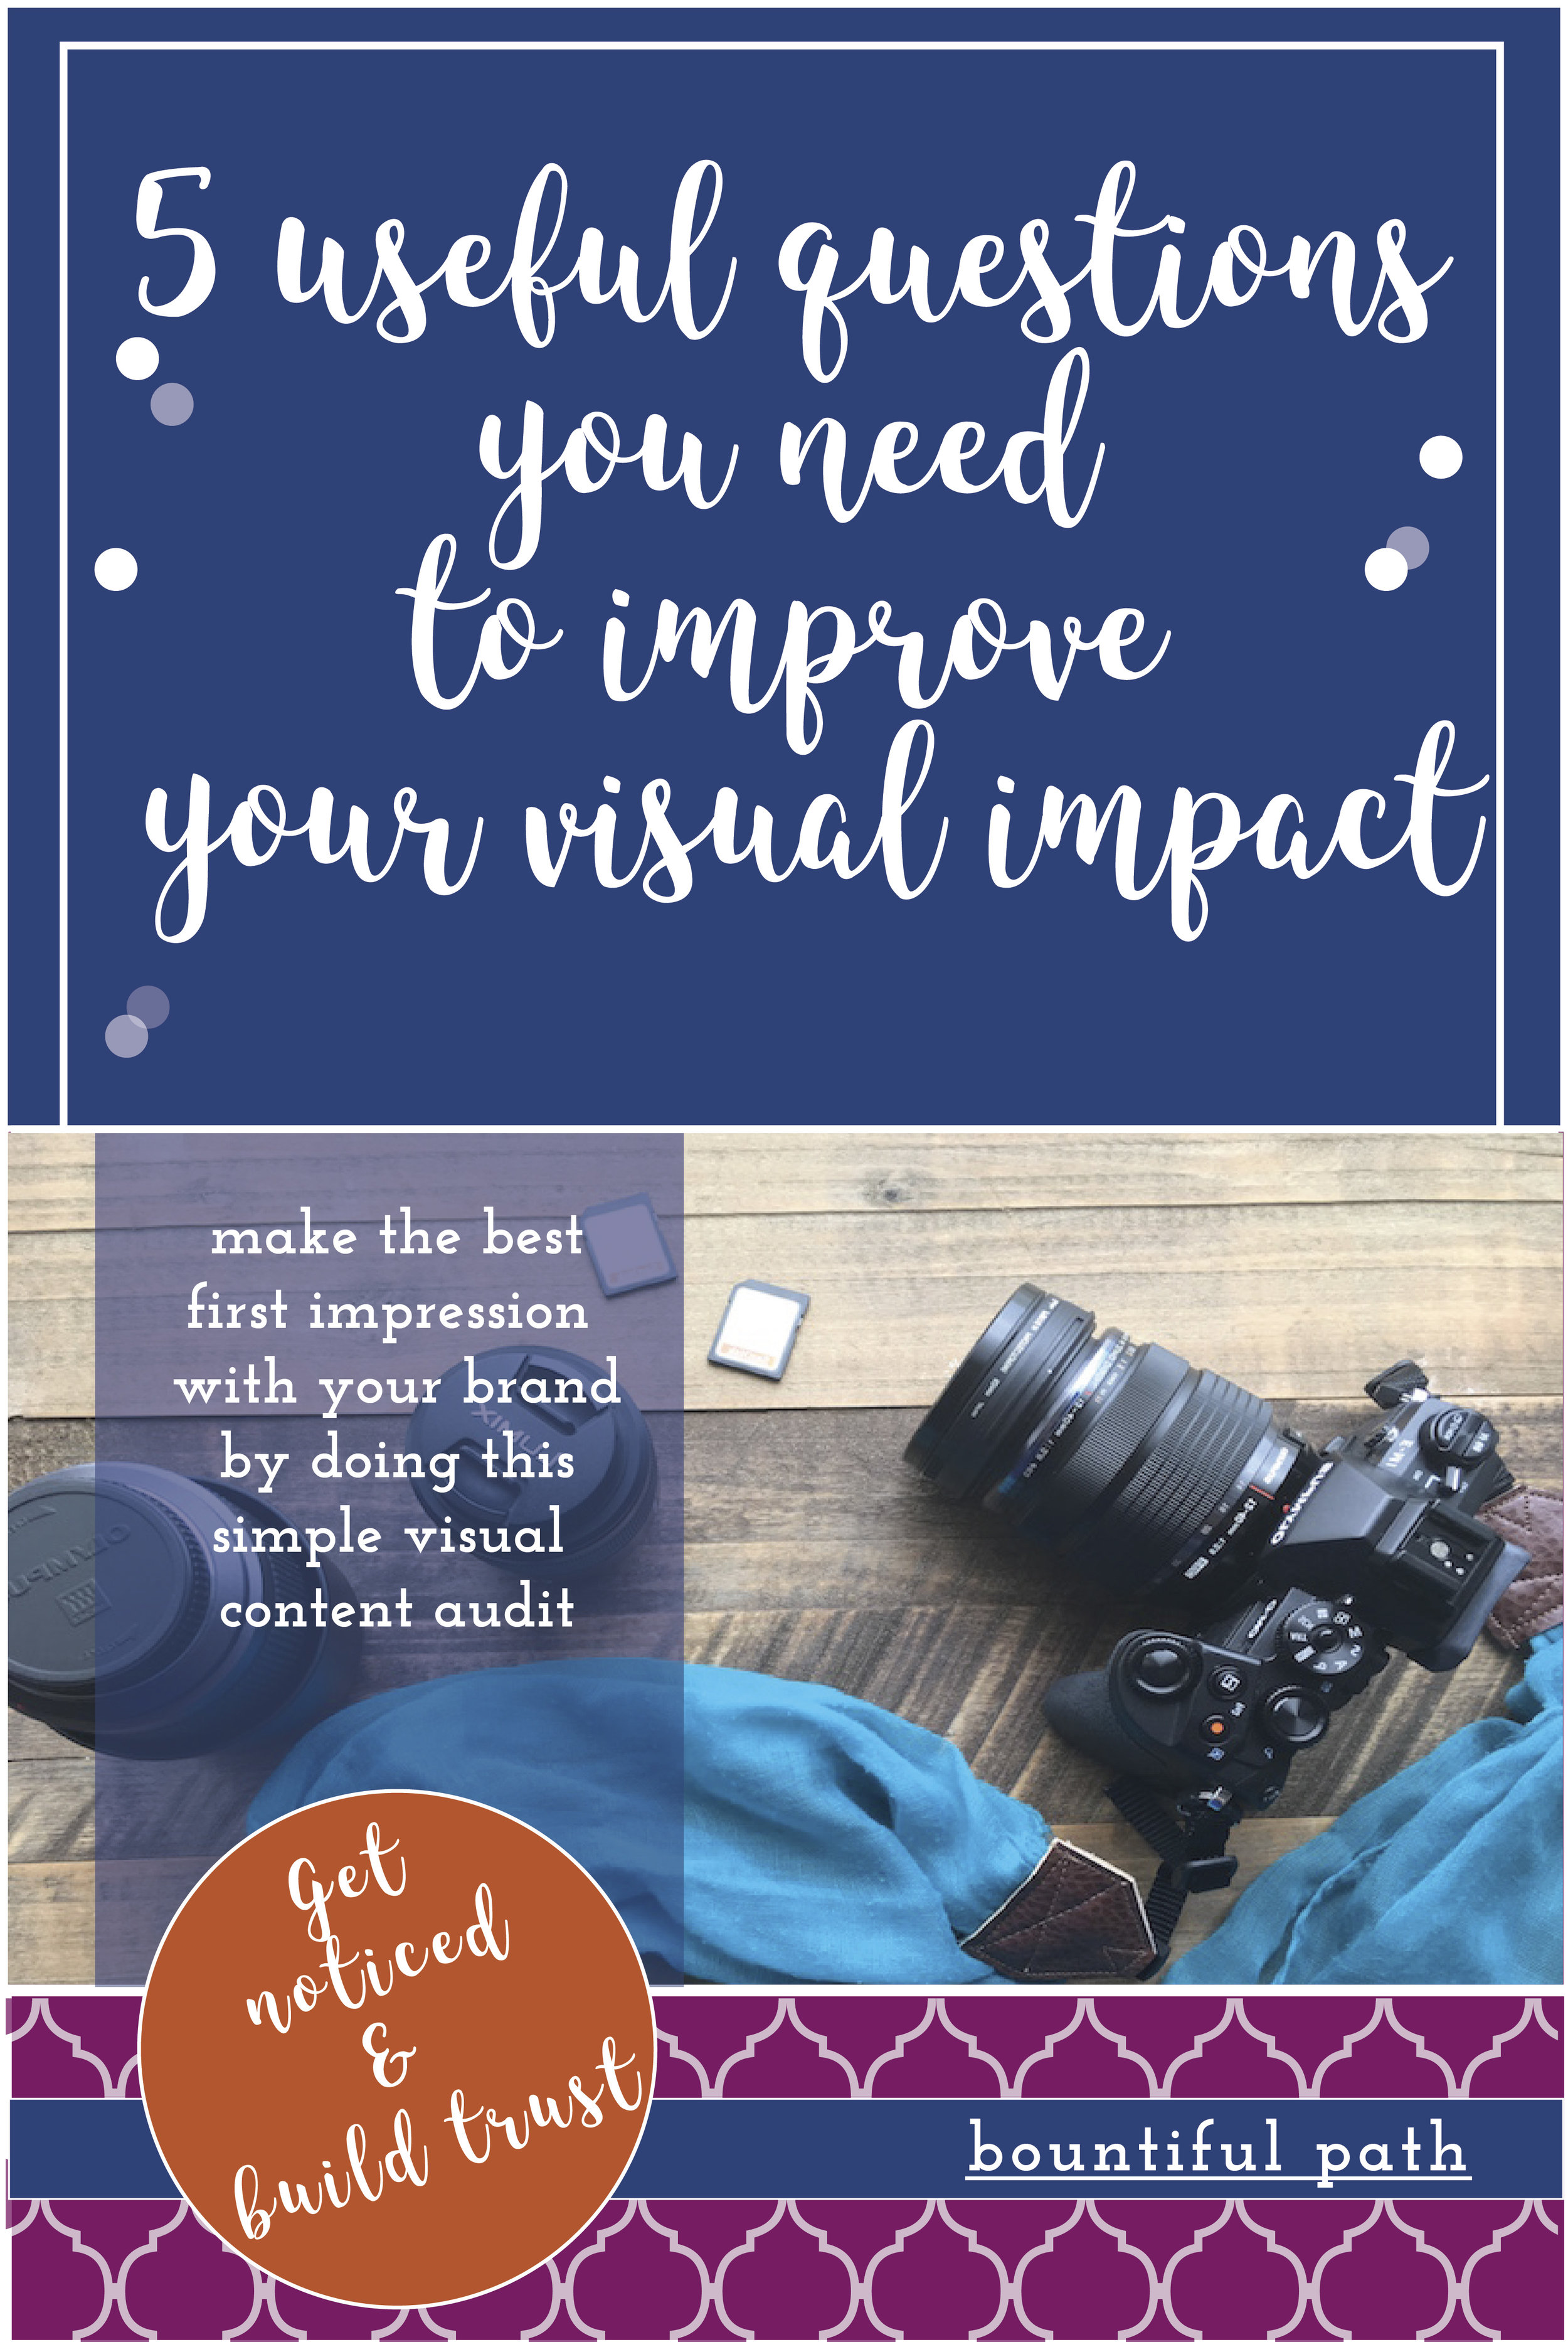 5 useful questions you need to ask to improve the visual impact of your brand by Bountiful Path: Get noticed and make an impact with amazing visual content